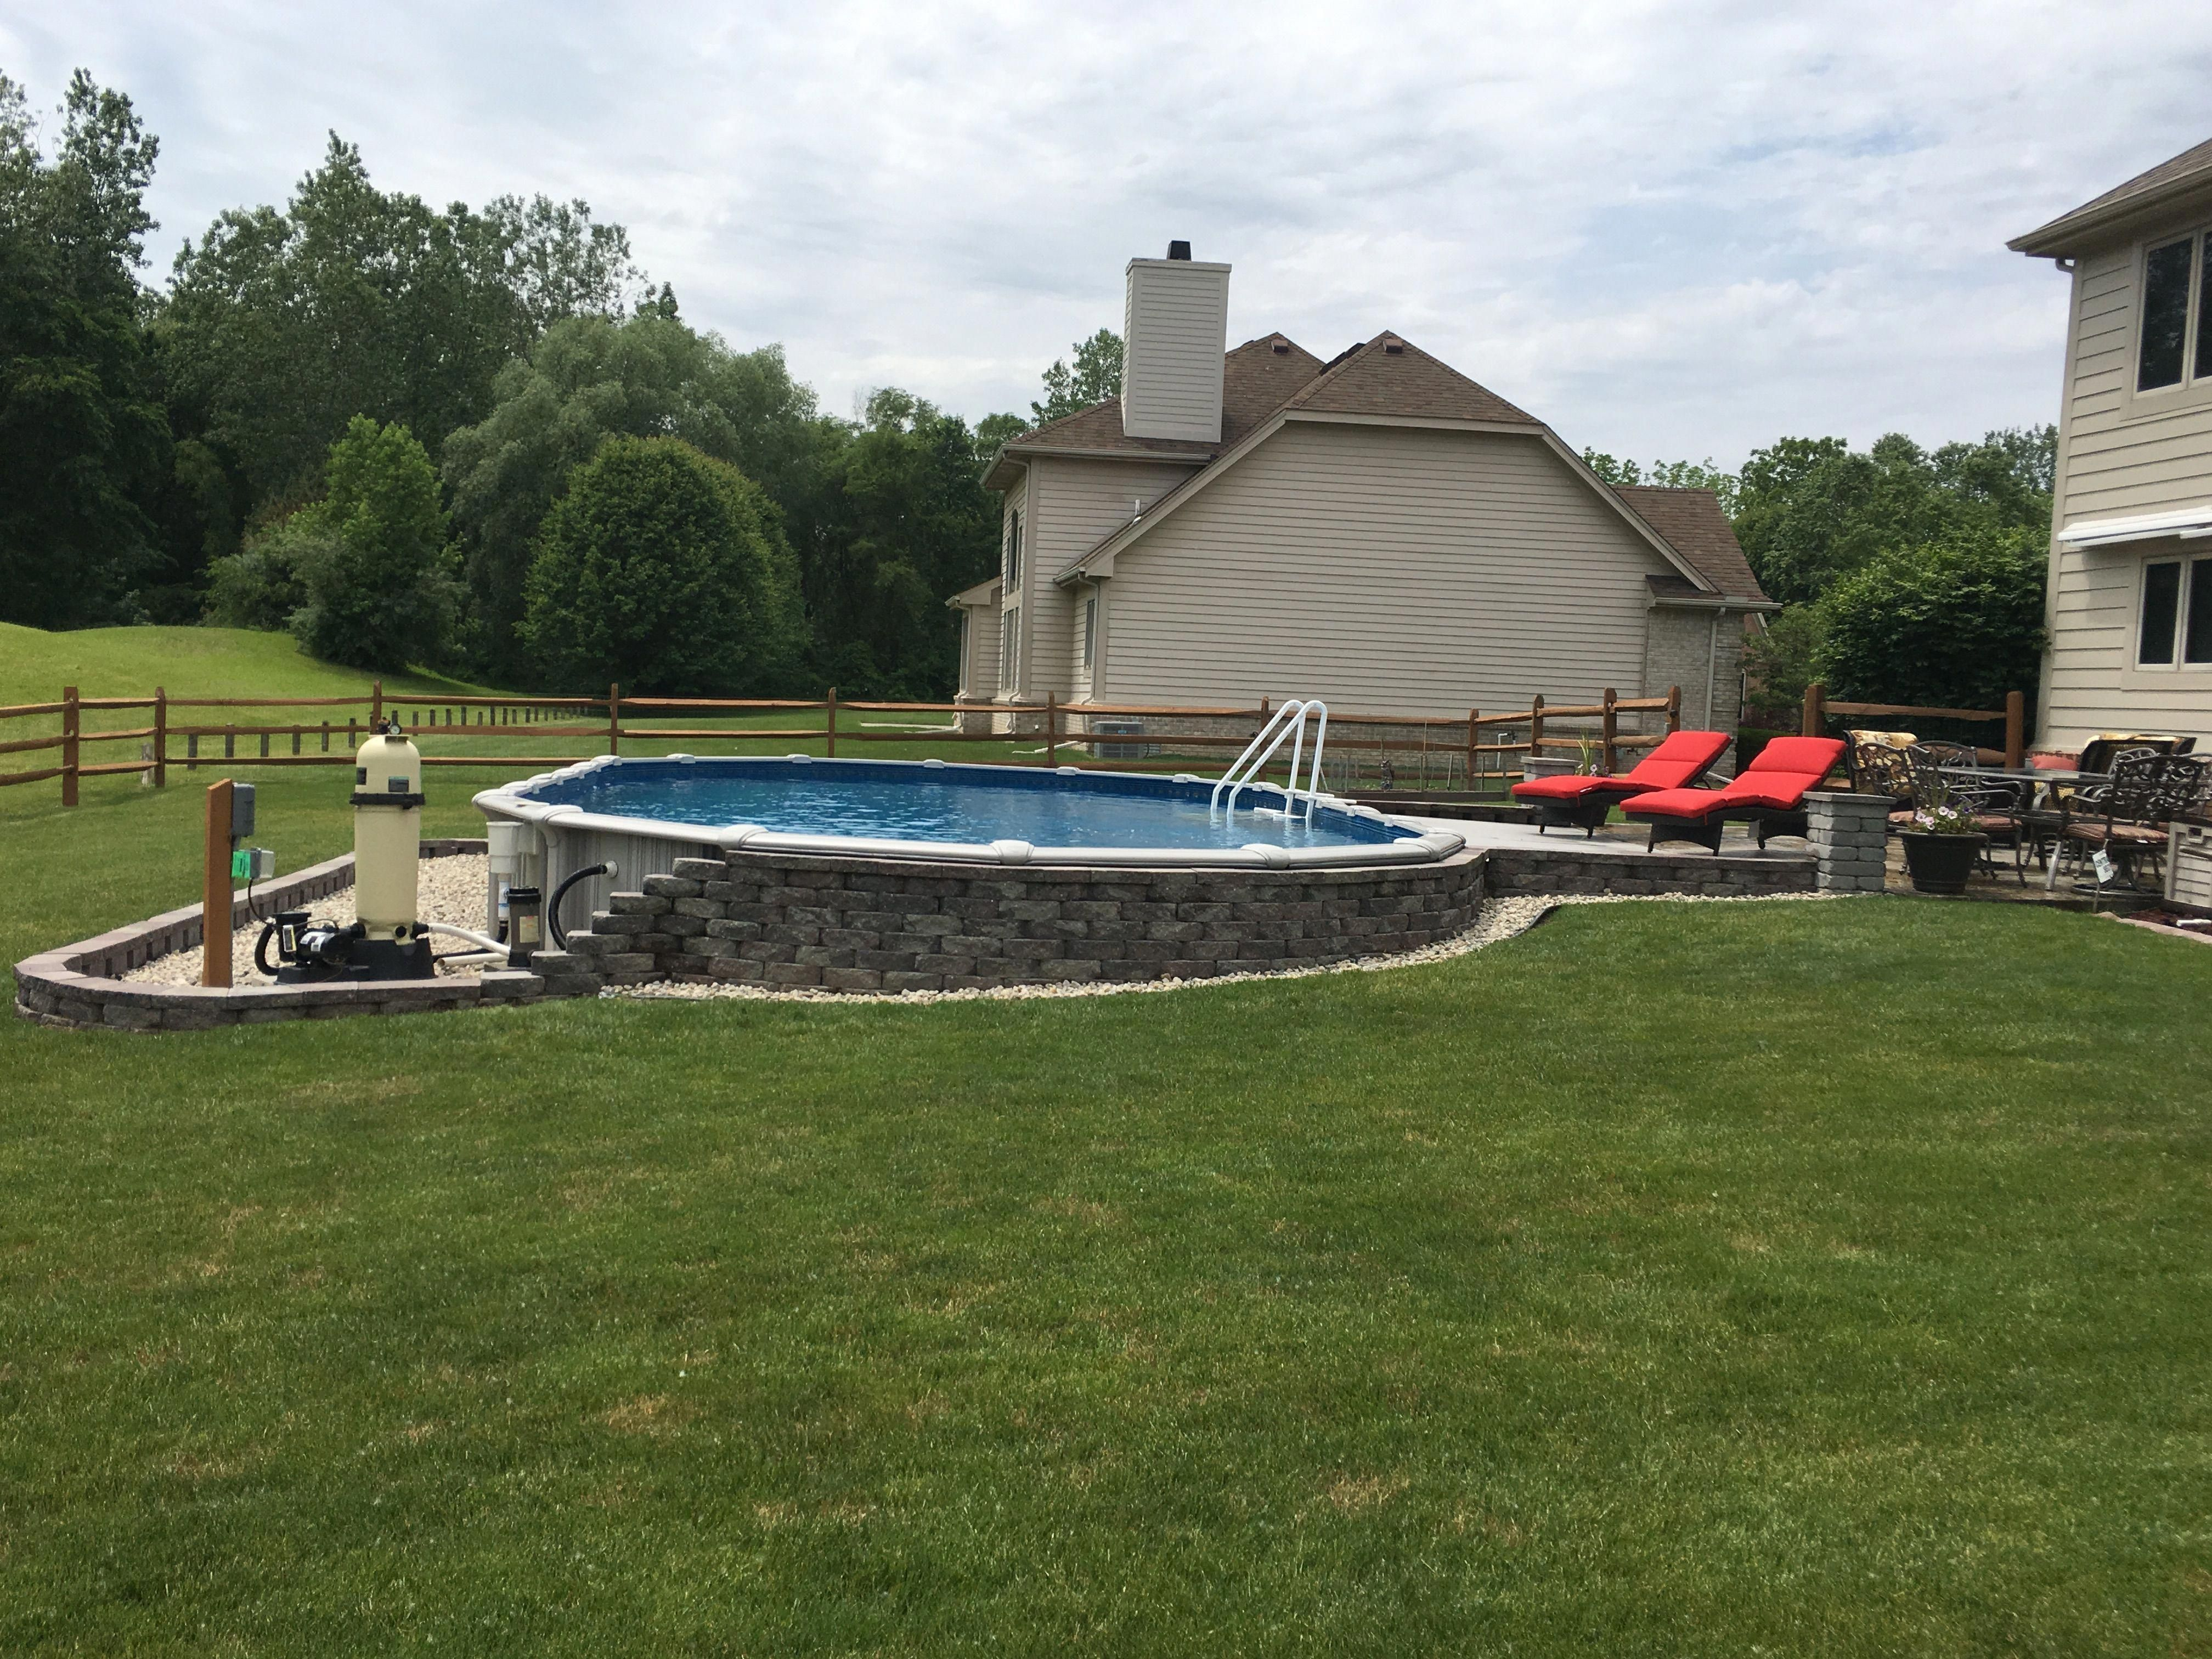 Divingplatformtips Backyard Pool Landscaping Backyard Pool Pool Landscaping Backyard landscaping ideas with above ground pool